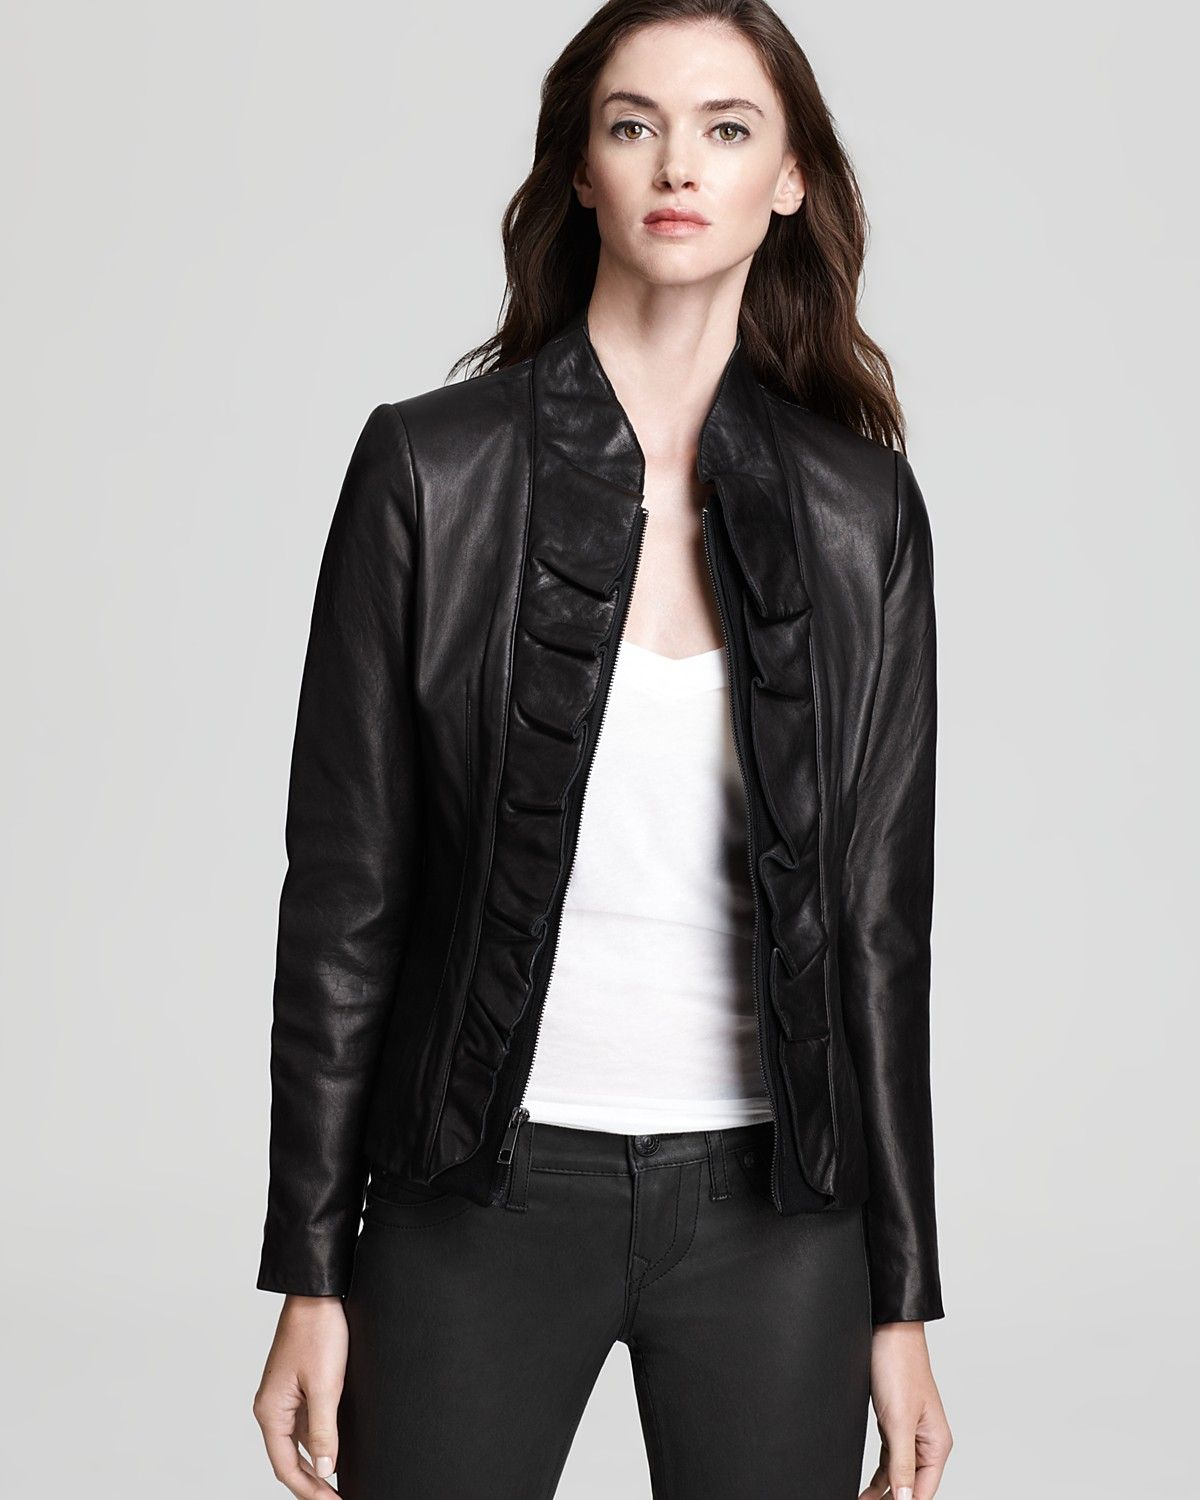 Elie Tahari Kendrick Ruffle Leather Jacket Leather Women S Trends Fall Style Guide It S On Lookb Leather Jacket Leather Jackets Women Fall Style Guide [ 1500 x 1200 Pixel ]